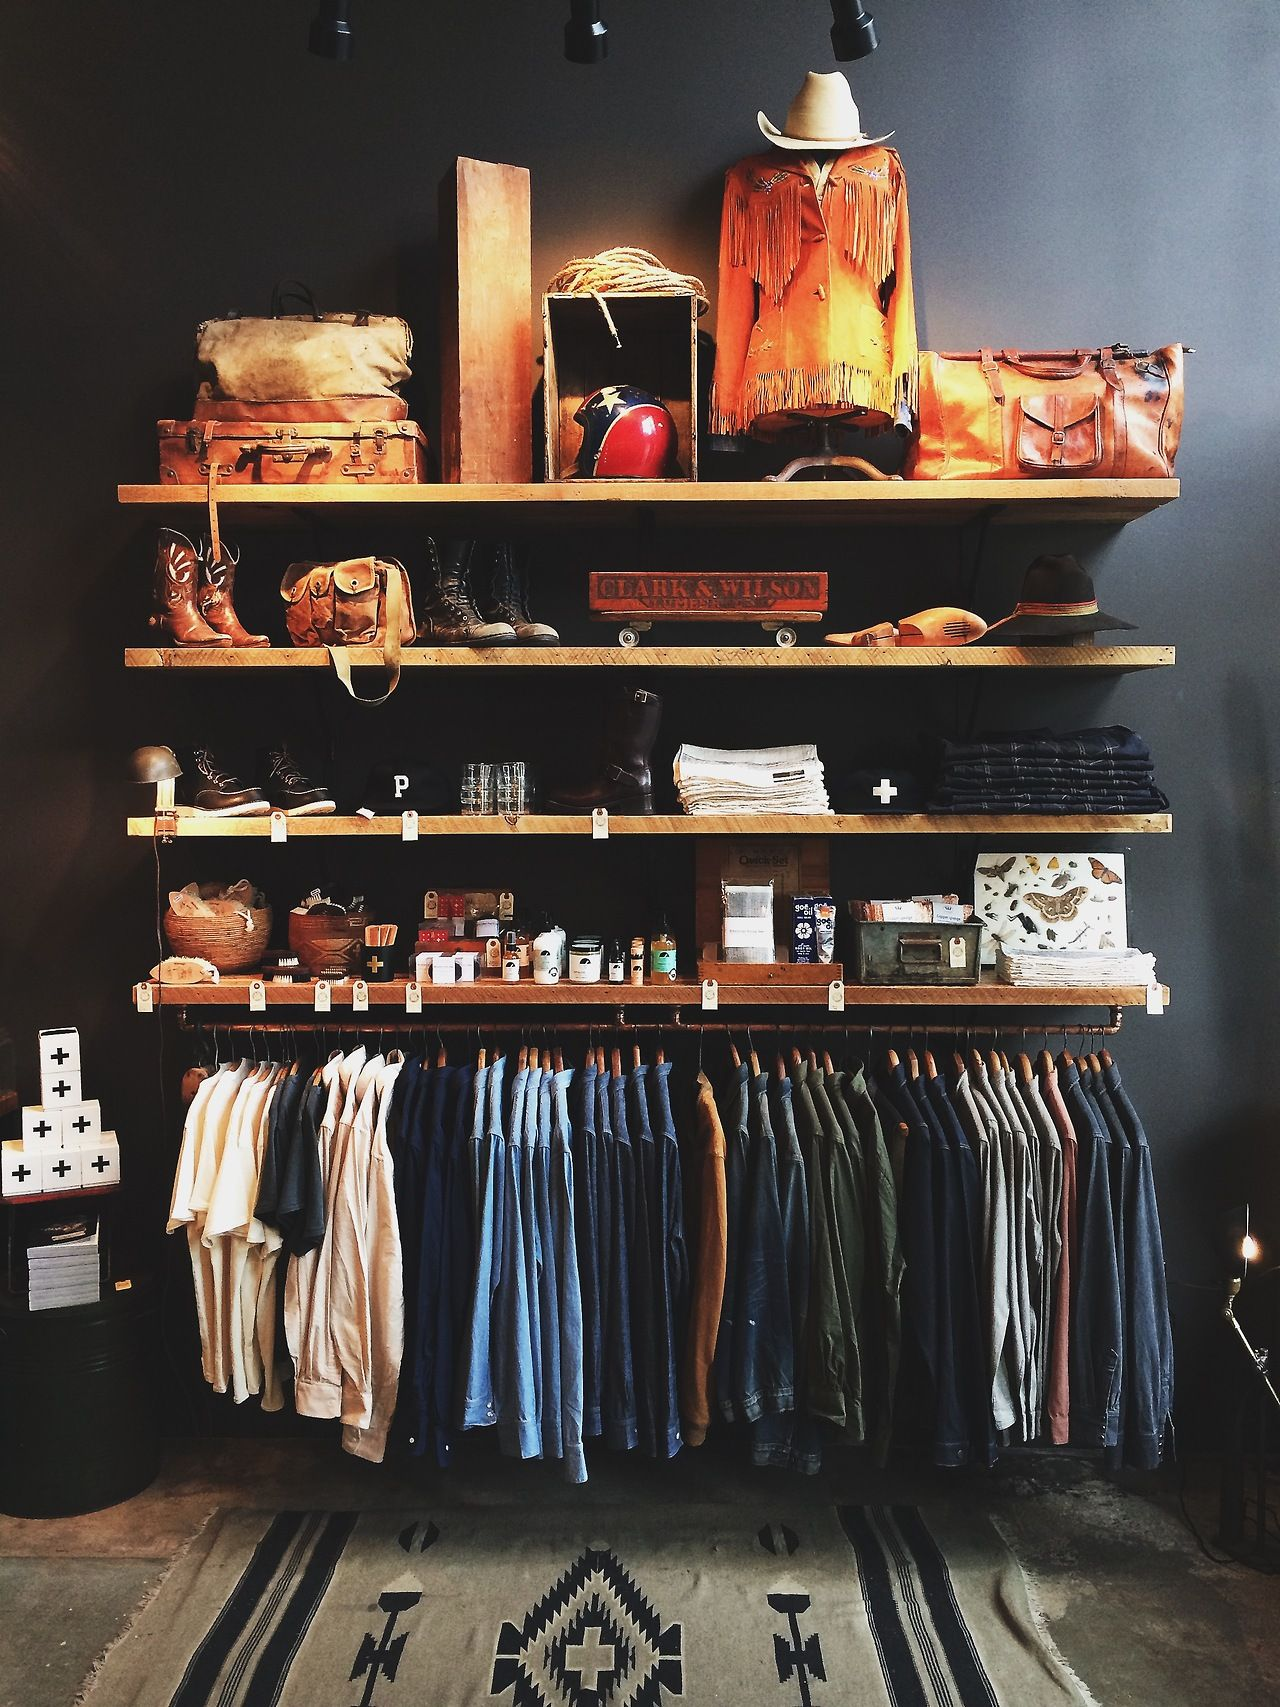 Awesome Minimalist Wardrobe And Shelf Organisation   Great For Compact  Apartment Living. Gorgeous Visual Merchandising.